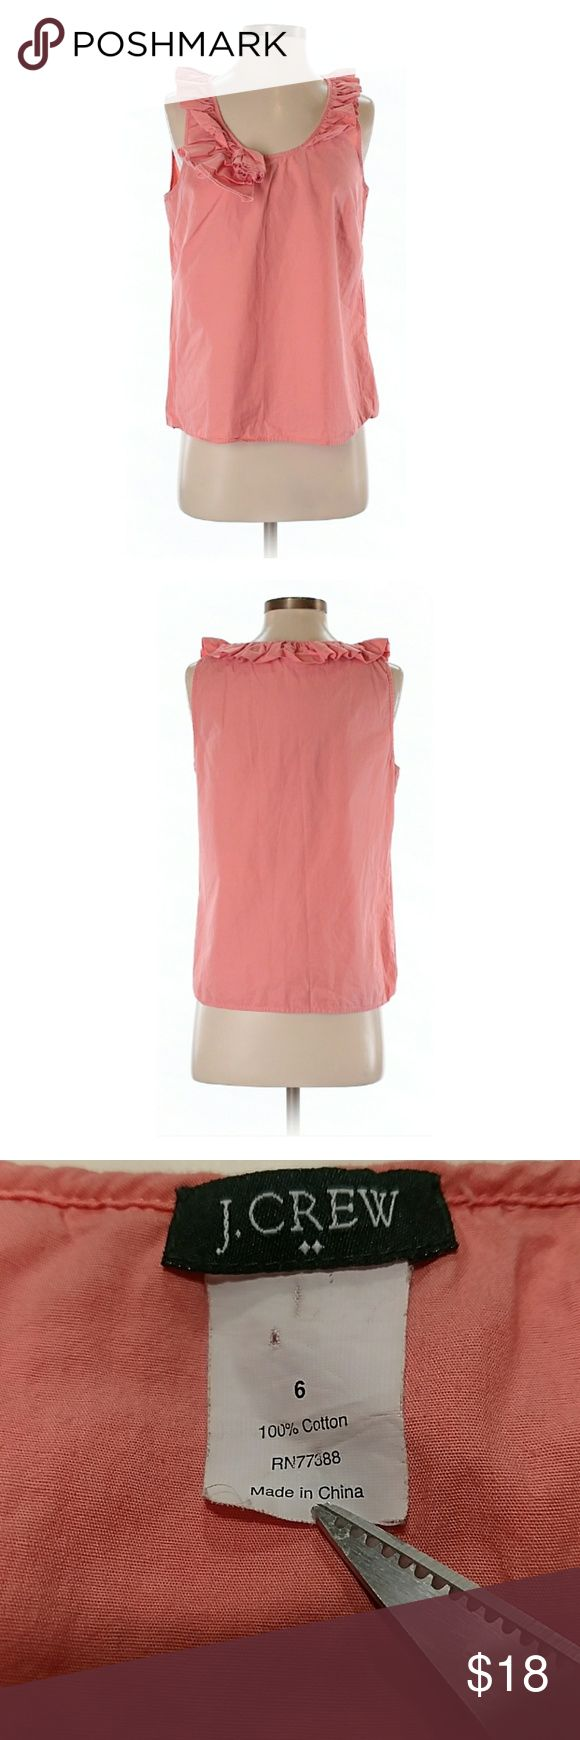 """J Crew Sleeveless Coral Blouse Great condition. 32"""" chest, 22"""" long. Ruffle & rose detail. All pictures are of the actual item that you will receive. Smoke-free home. J. Crew Tops Blouses"""